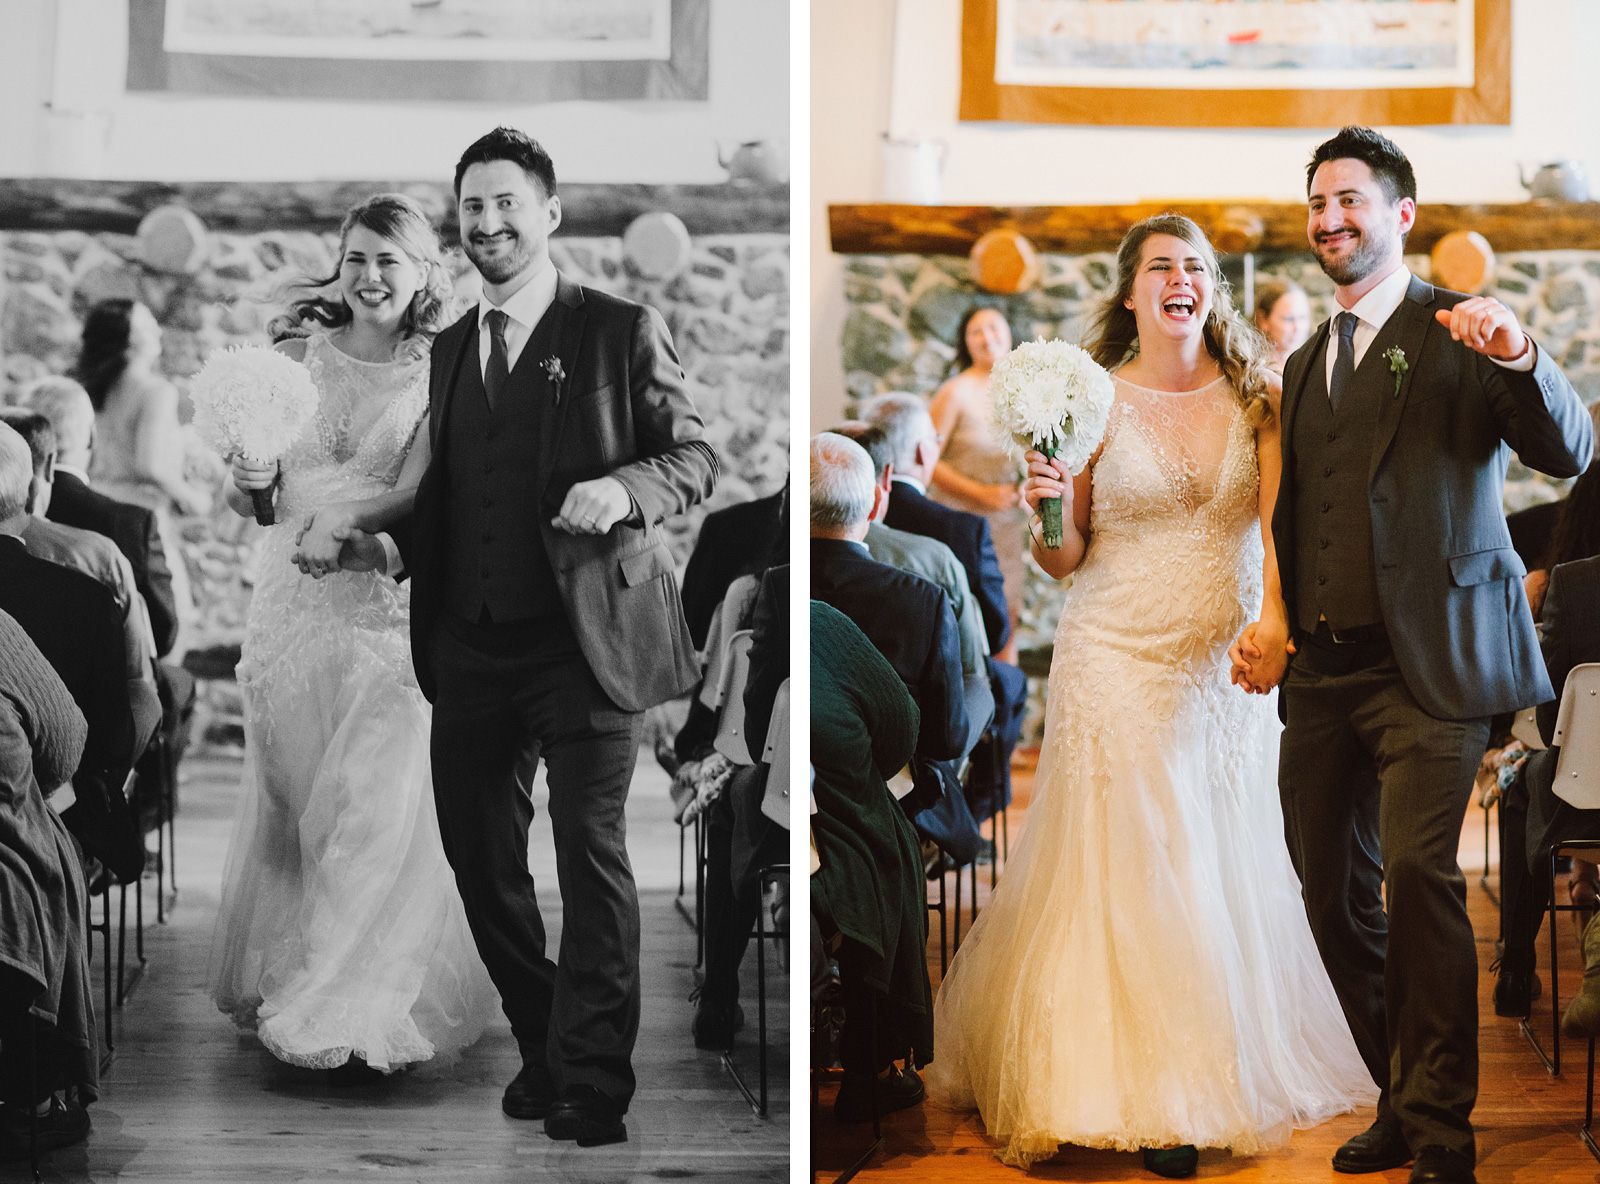 Bride and Groom dancing down the aisle after the ceremony | Camano Island Wedding